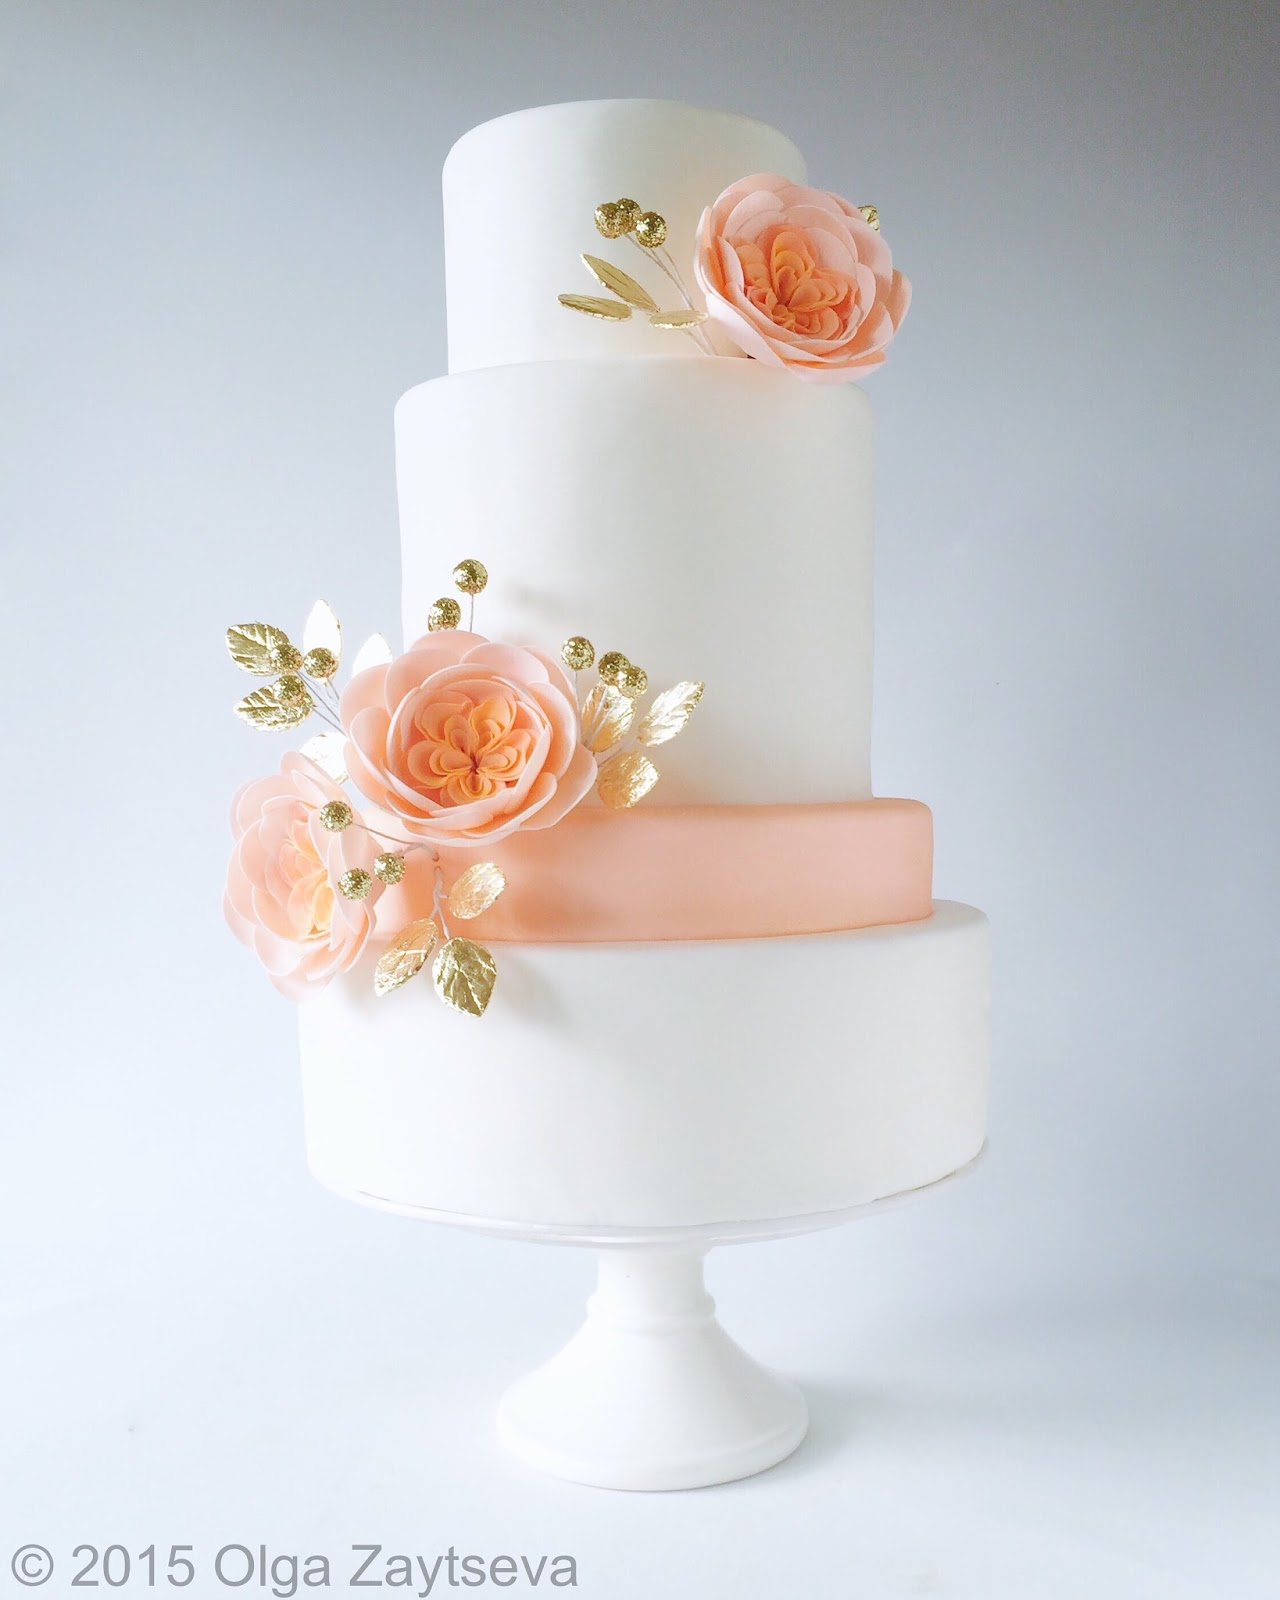 Clean and simple modern white wedding cake - Olga Zaytseva